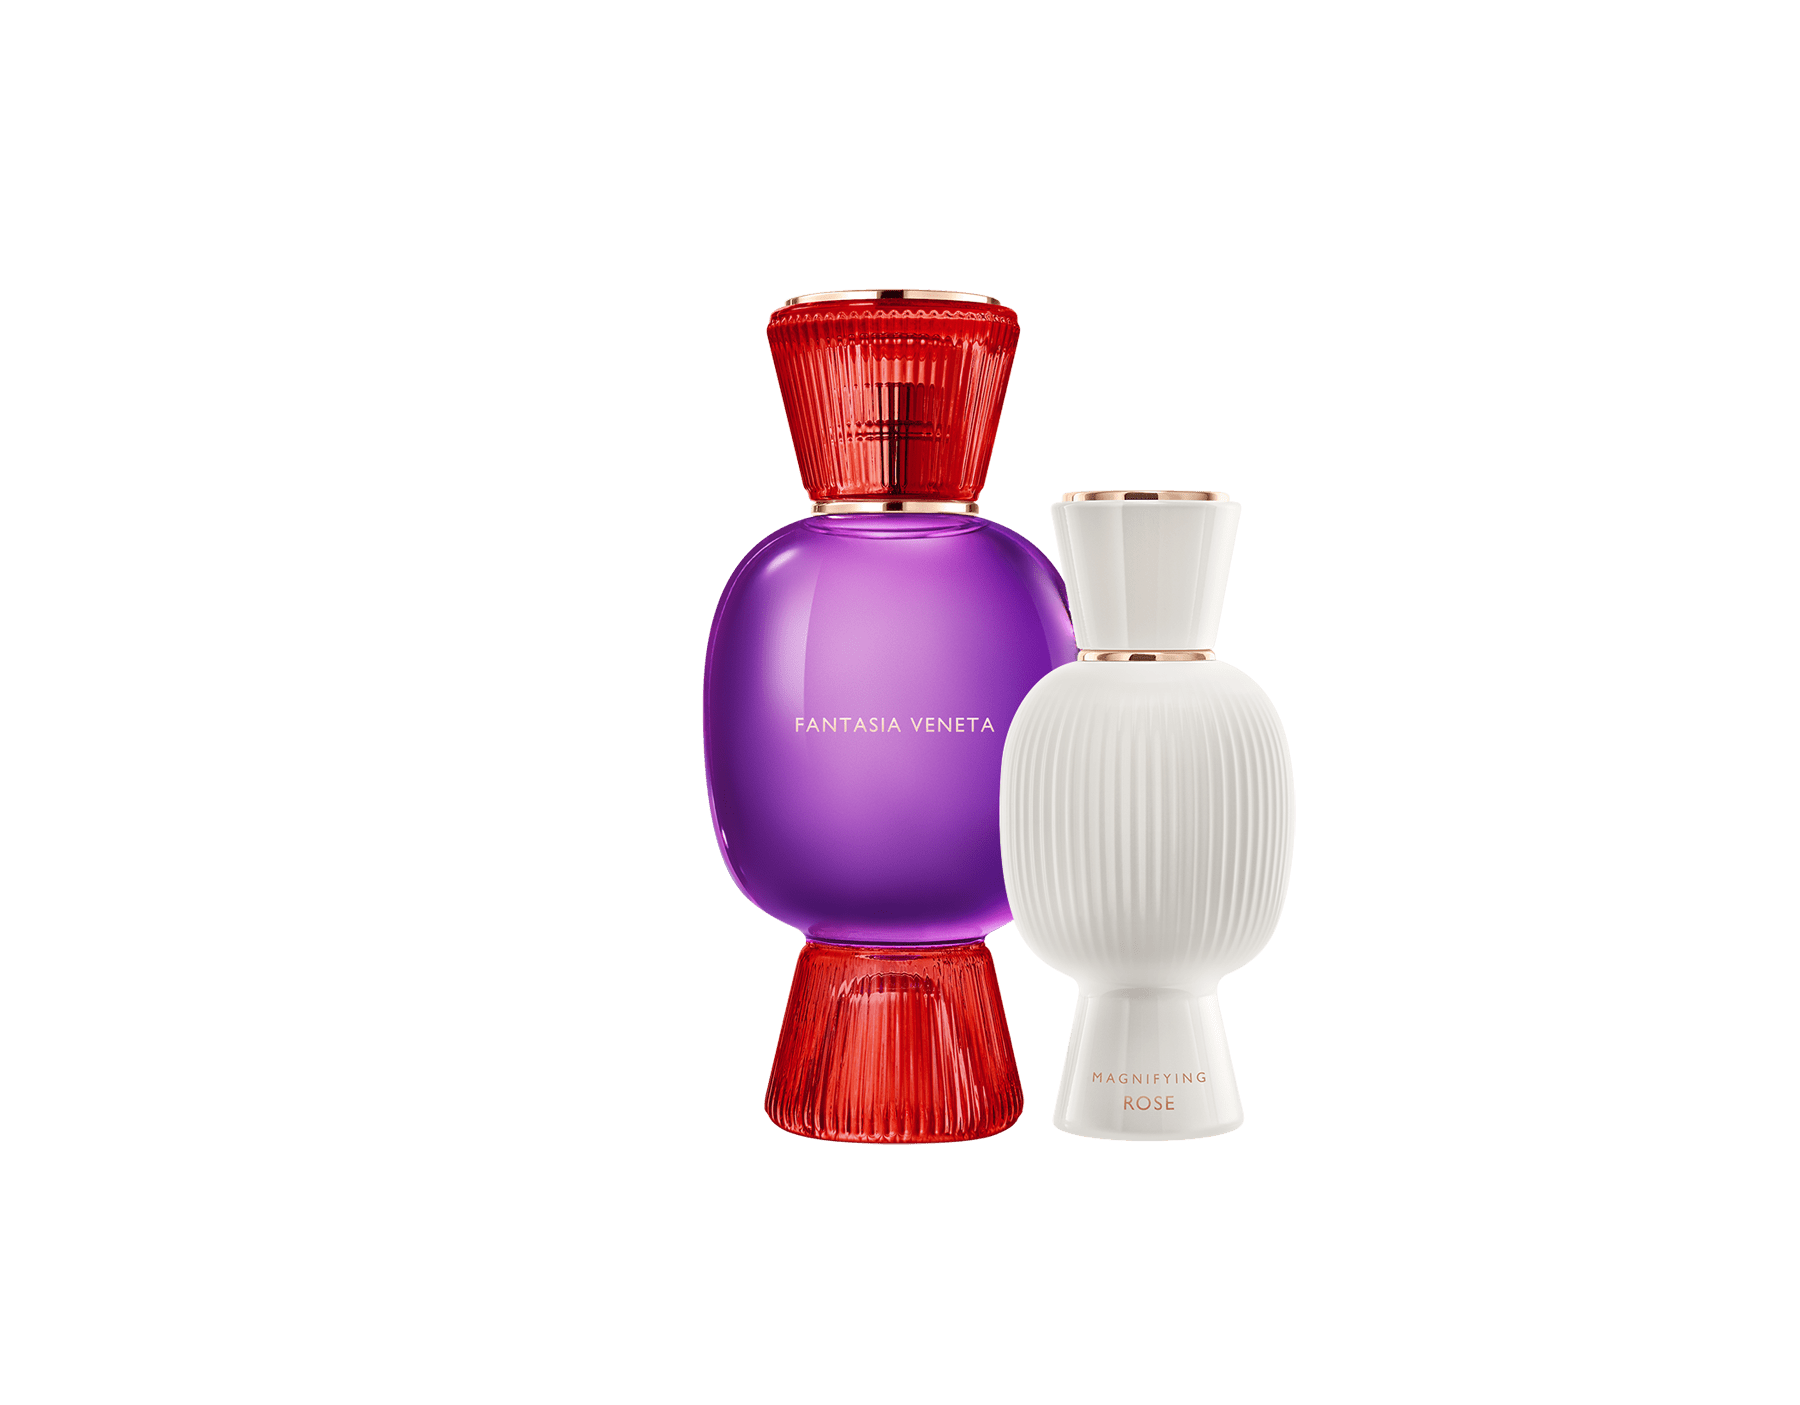 An exclusive perfume set, as bold and unique as you. The festive chypre Fantasia Veneta Allegra Eau de Parfum blends with the velvety, voluptuous intensity of the Magnifying Rose Essence, creating an irresistible personalised women's perfume. Perfume-Set-Fantasia-Veneta-Eau-de-Parfum-and-Rose-Magnifying image 1